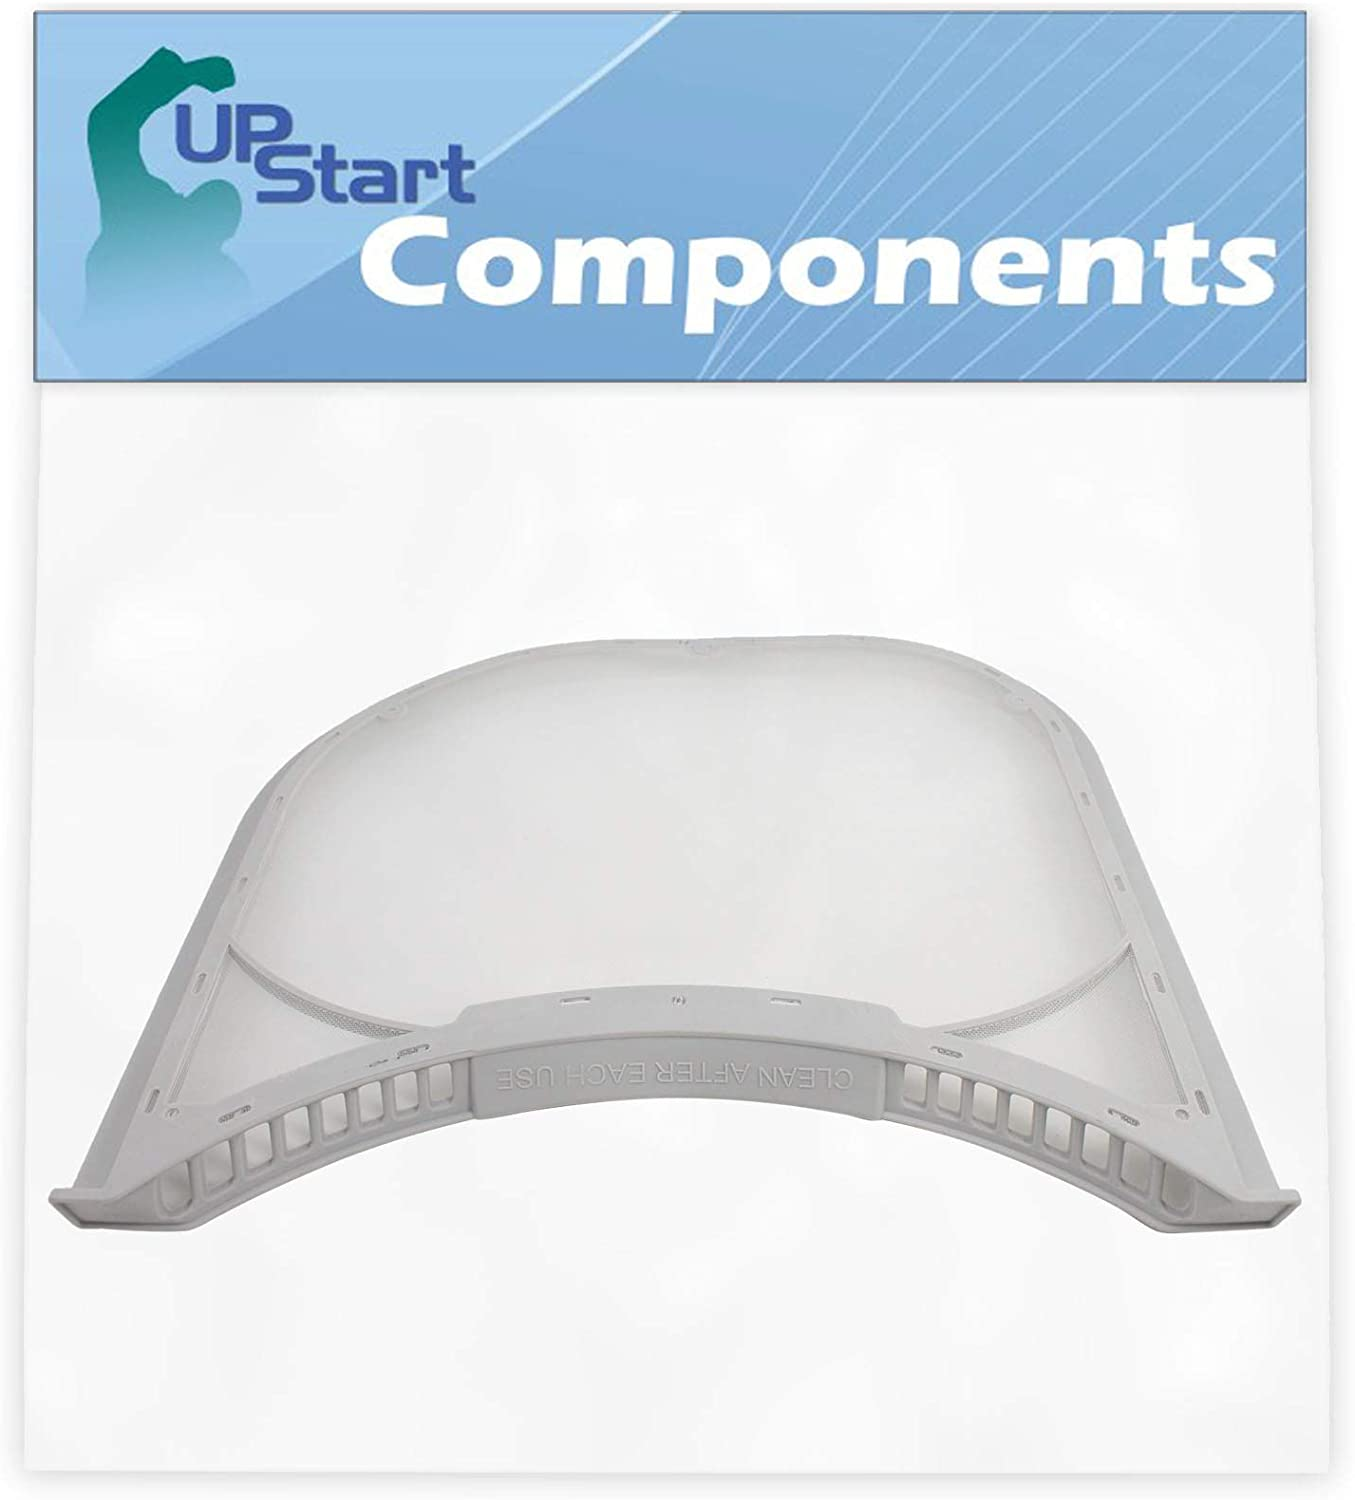 5231EL1003B Dryer Lint Filter Replacement for Kenmore/Sears 796.90311900 - Compatible with PS3527578 Lint Filter